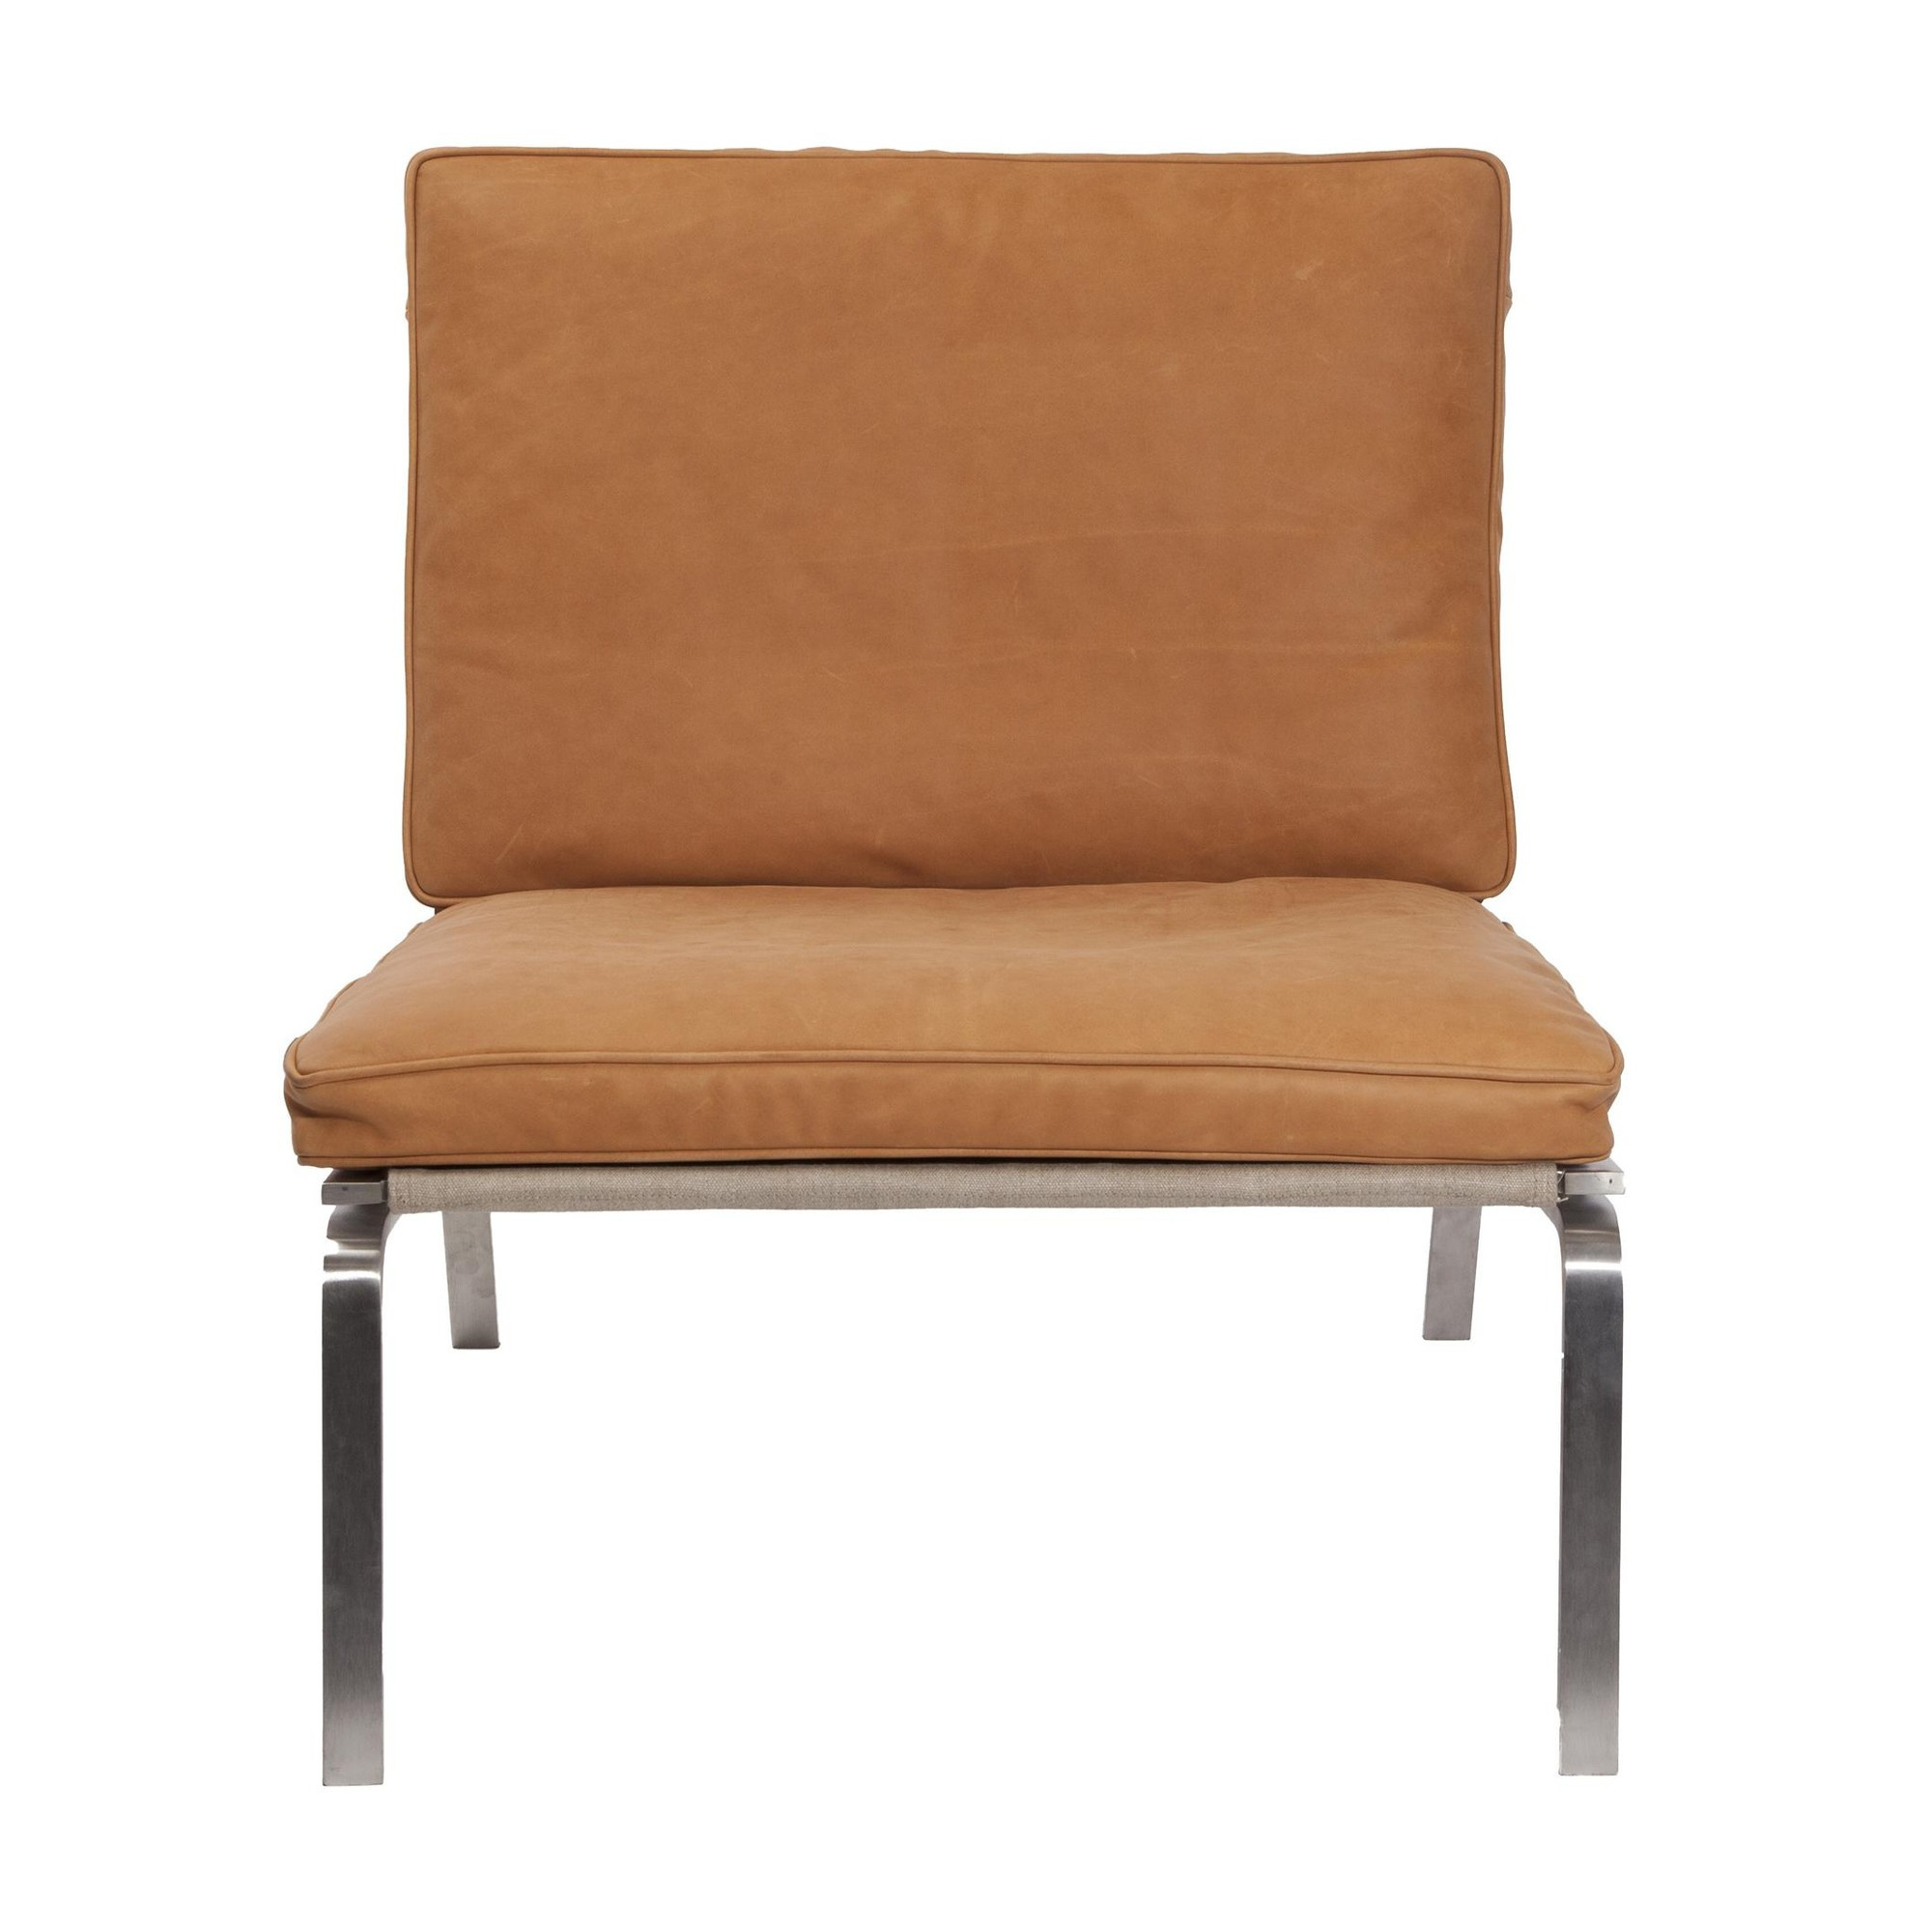 Sessel Cognac Man Lounge Chair Sessel